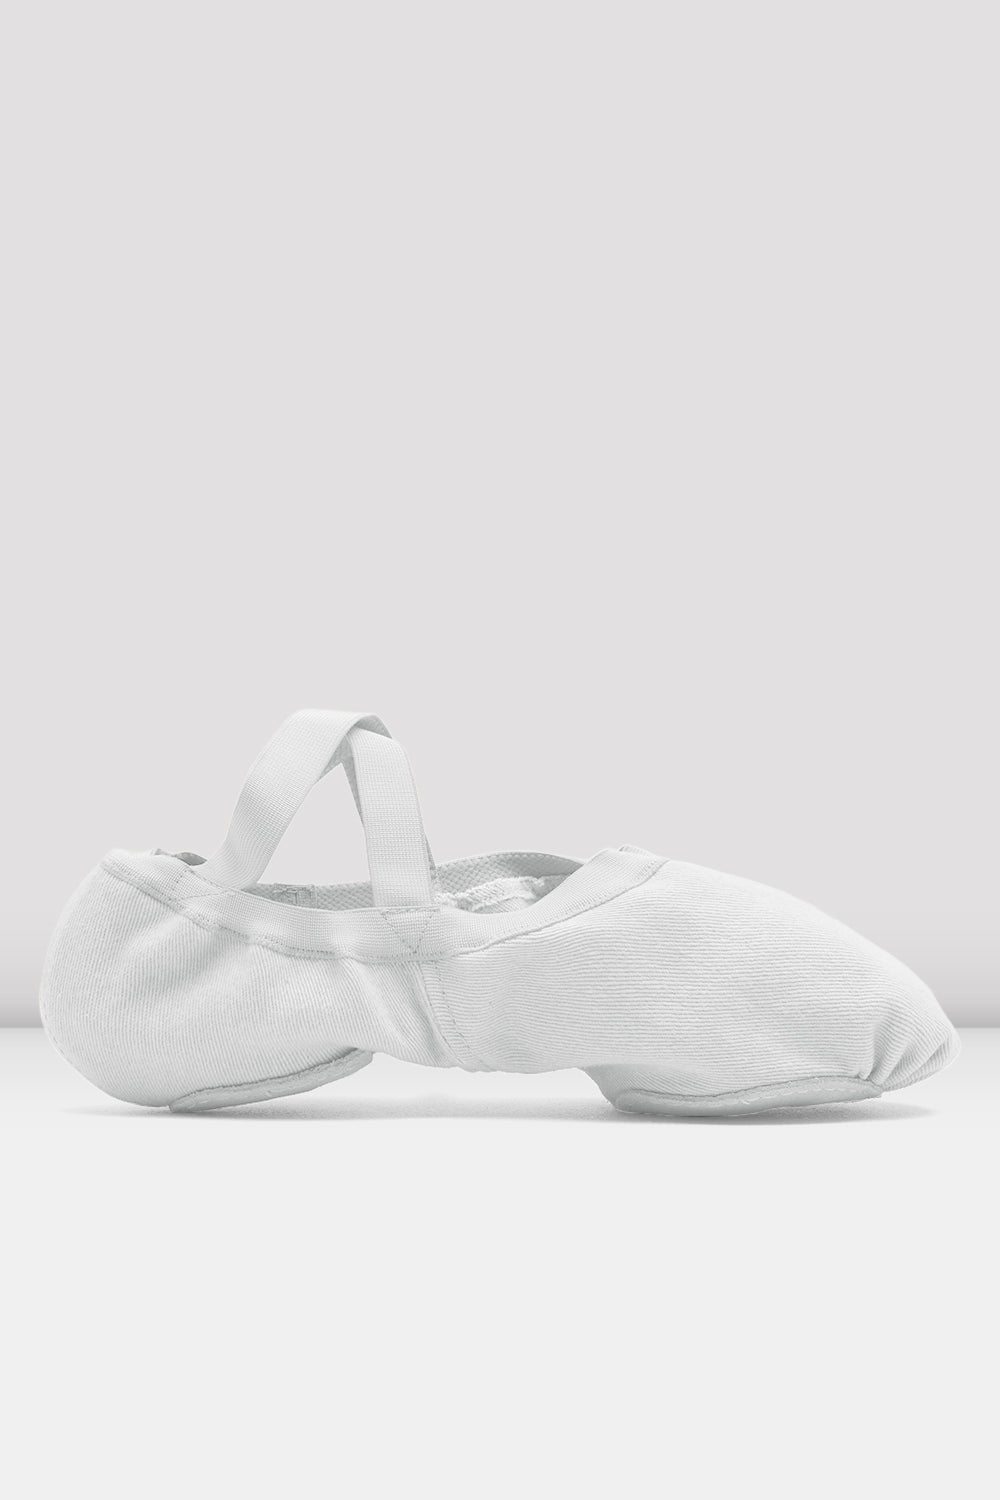 Mens Synchrony Stretch Canvas Ballet Shoes - BLOCH US